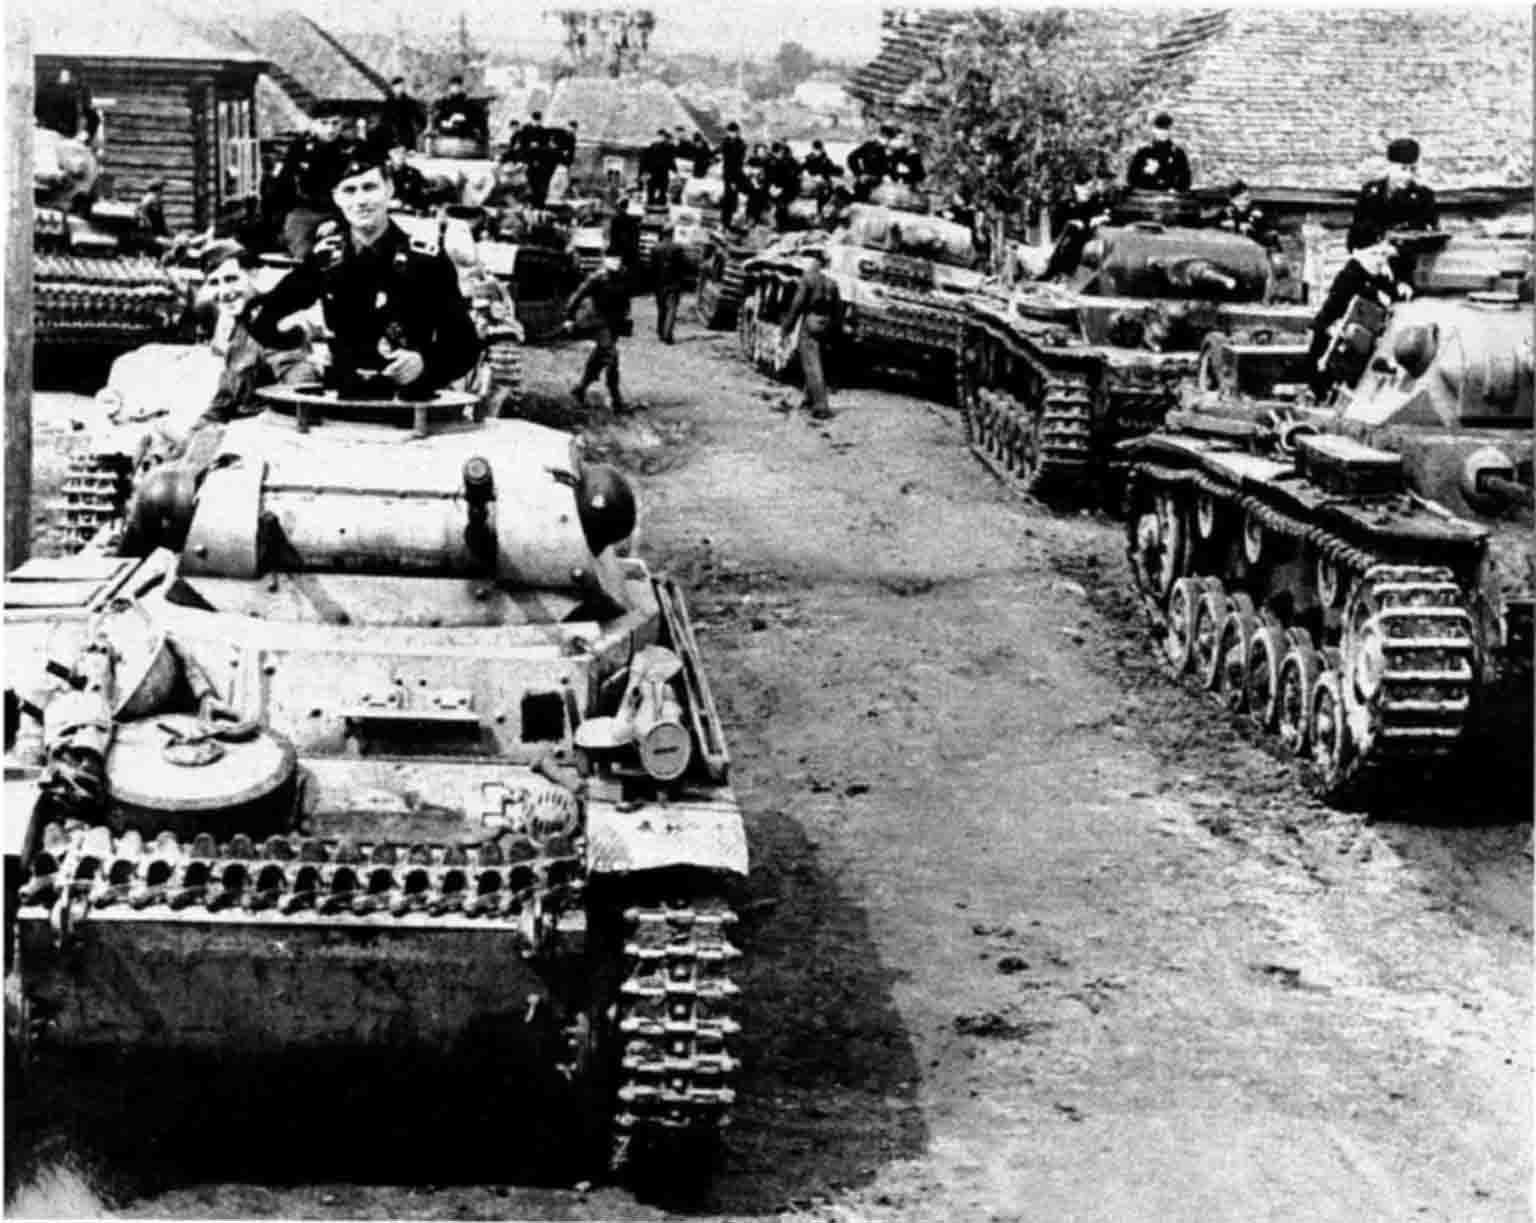 World War II - German tanks